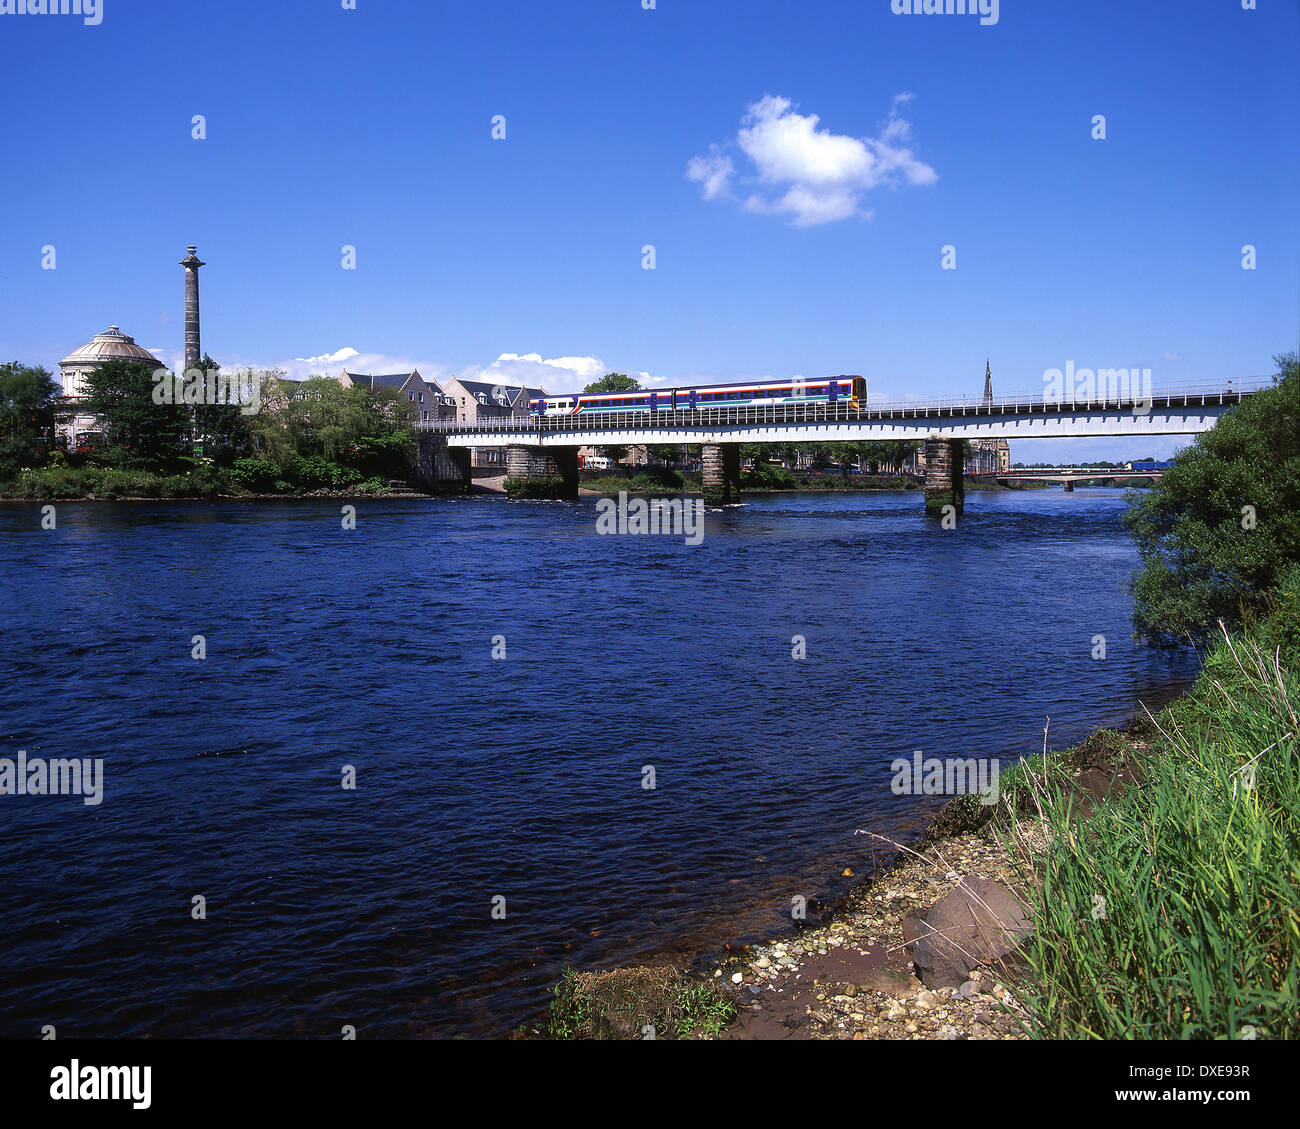 Scotrail 158 Sprinter crossing the river Tay, Perth - Stock Image